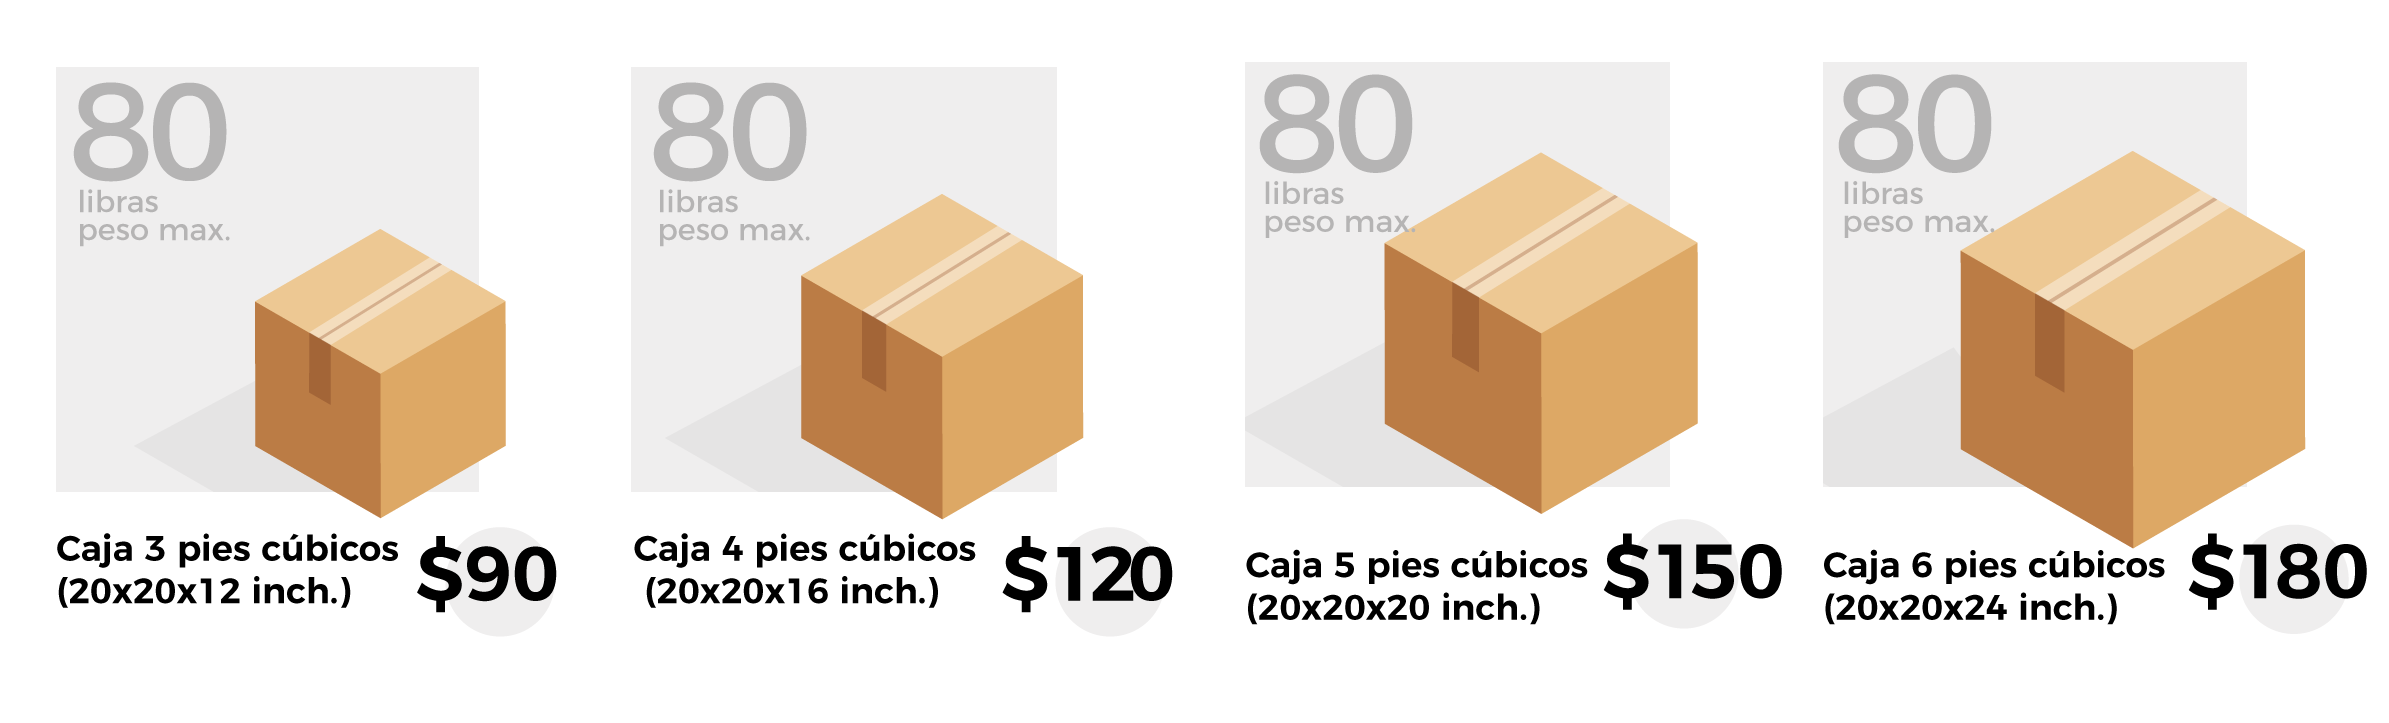 cajas-chile.png